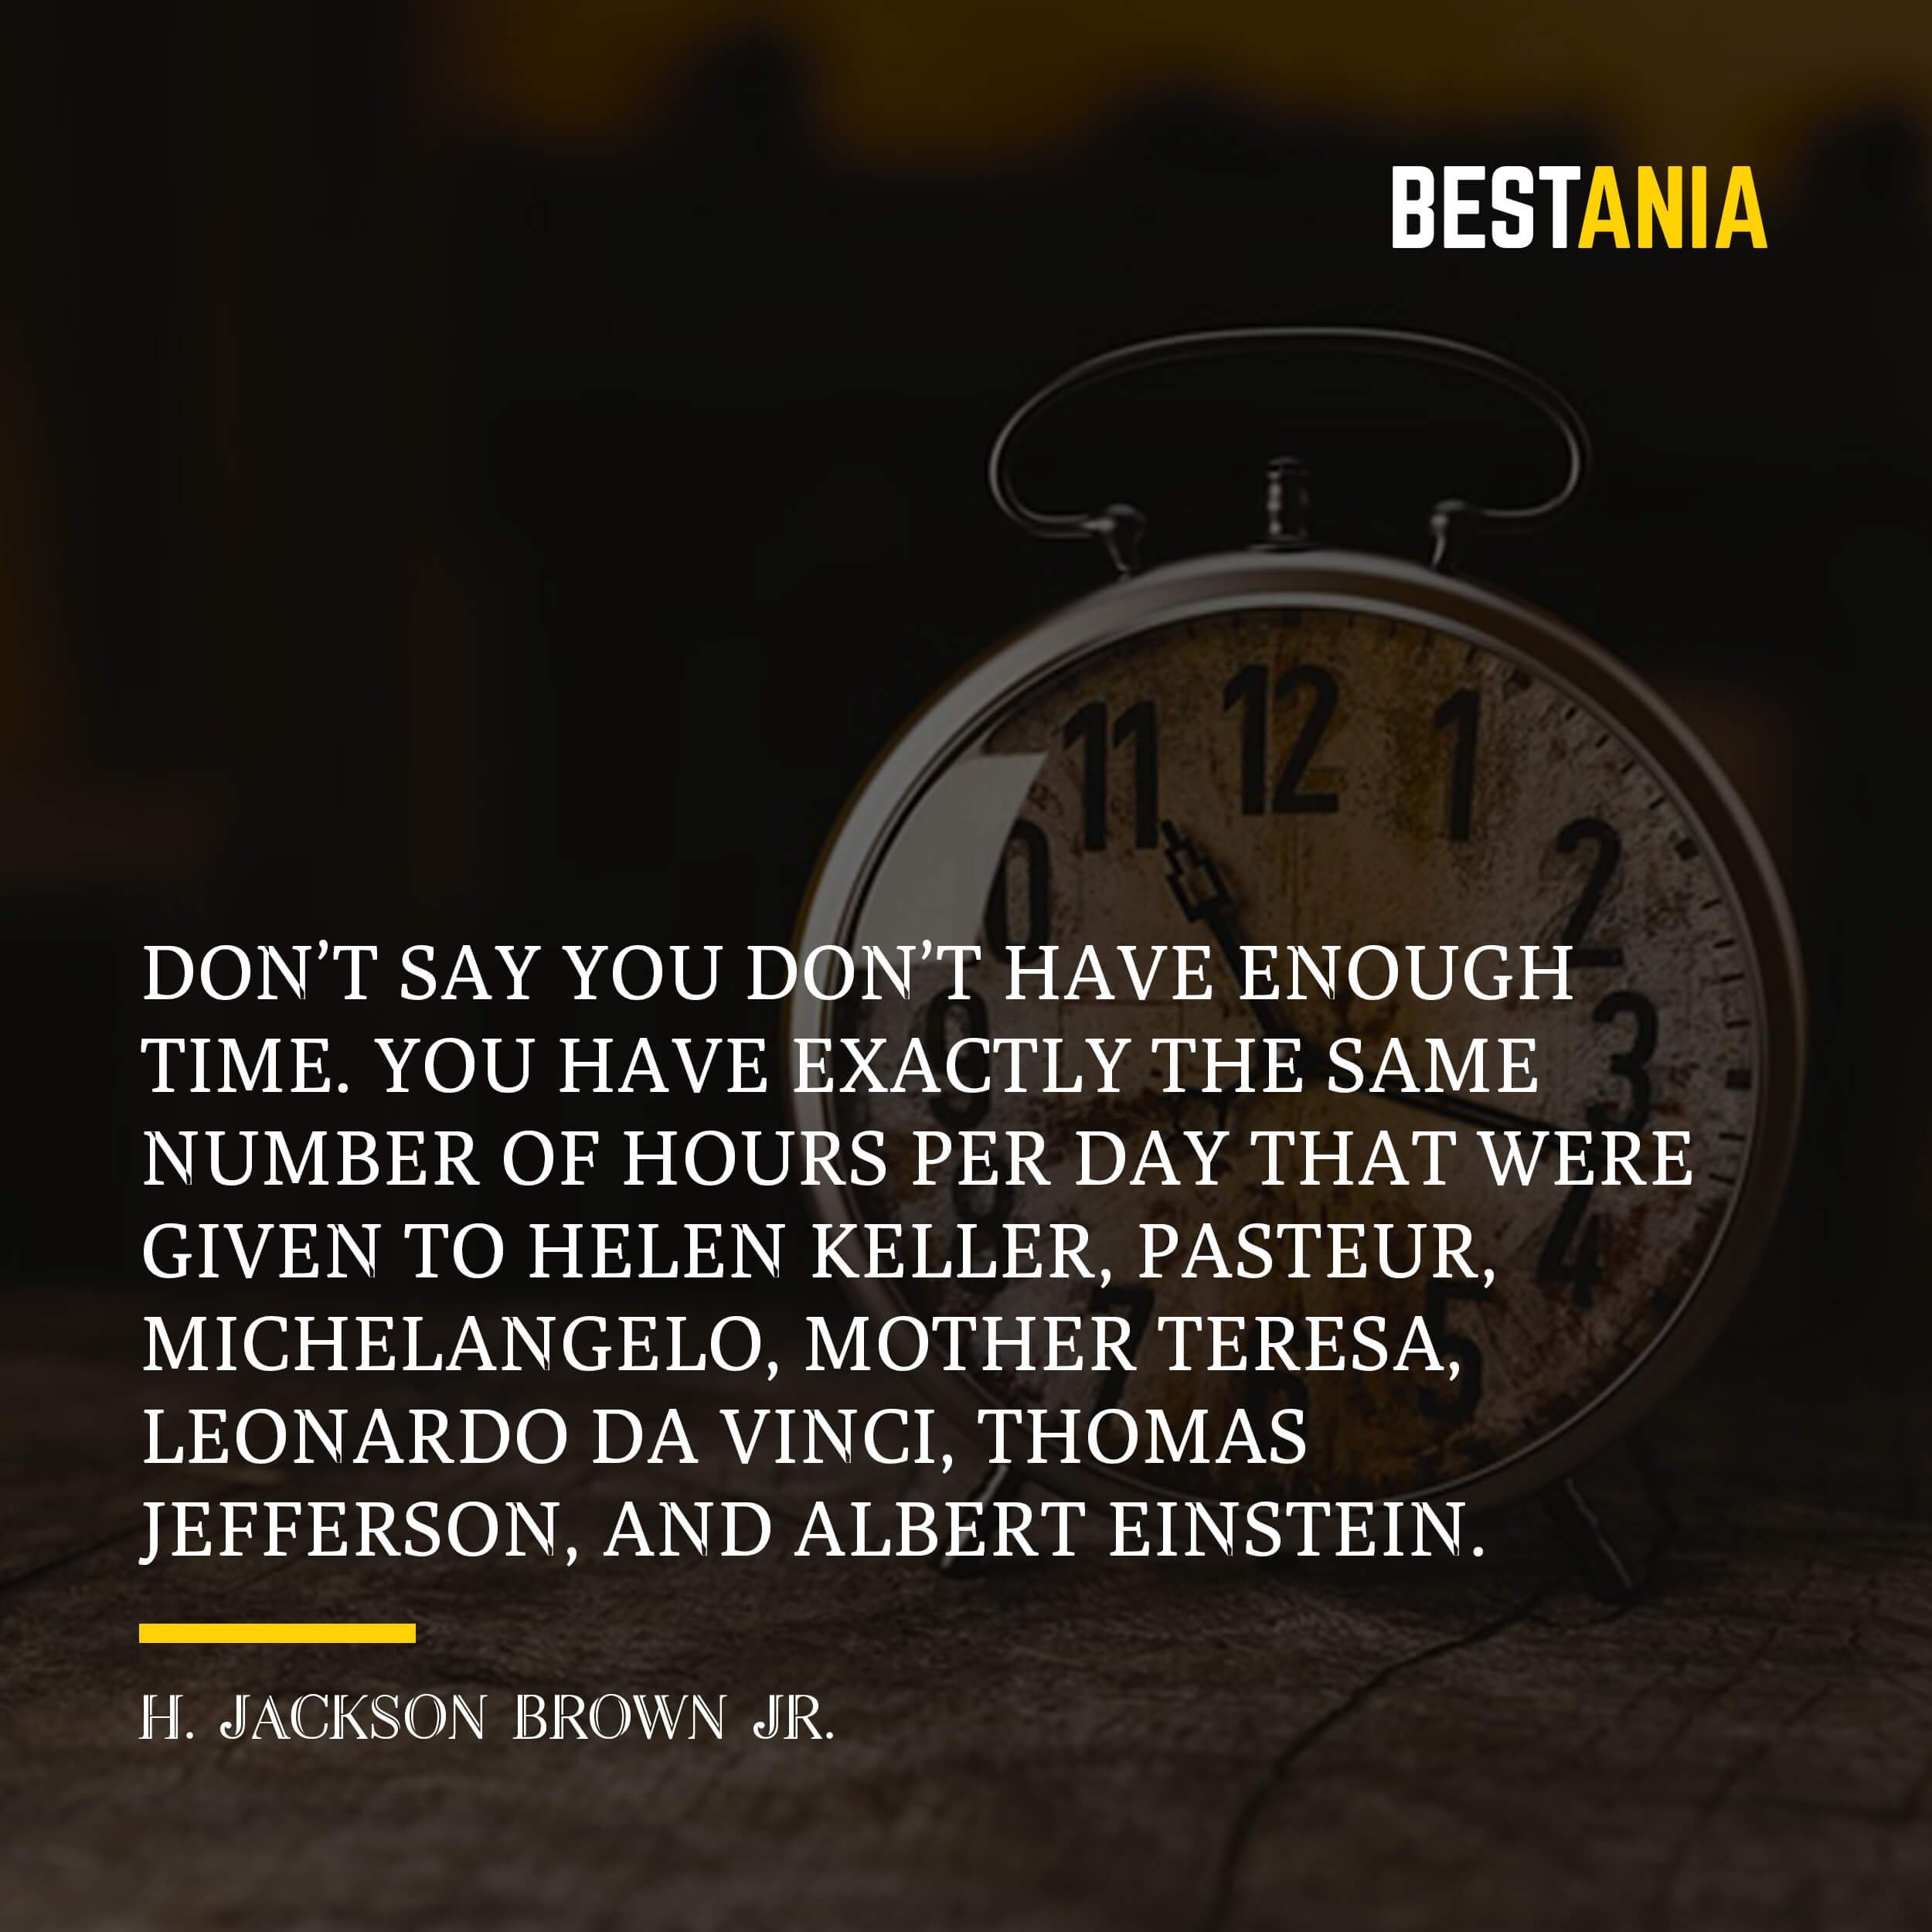 Don't say you don't have enough time. You have exactly the same number of hours per day that were given to Helen Keller, Pasteur, Michelangelo, Mother Teresa, Leonardo da Vinci, Thomas Jefferson, and Albert Einstein. – H. Jackson Brown Jr.